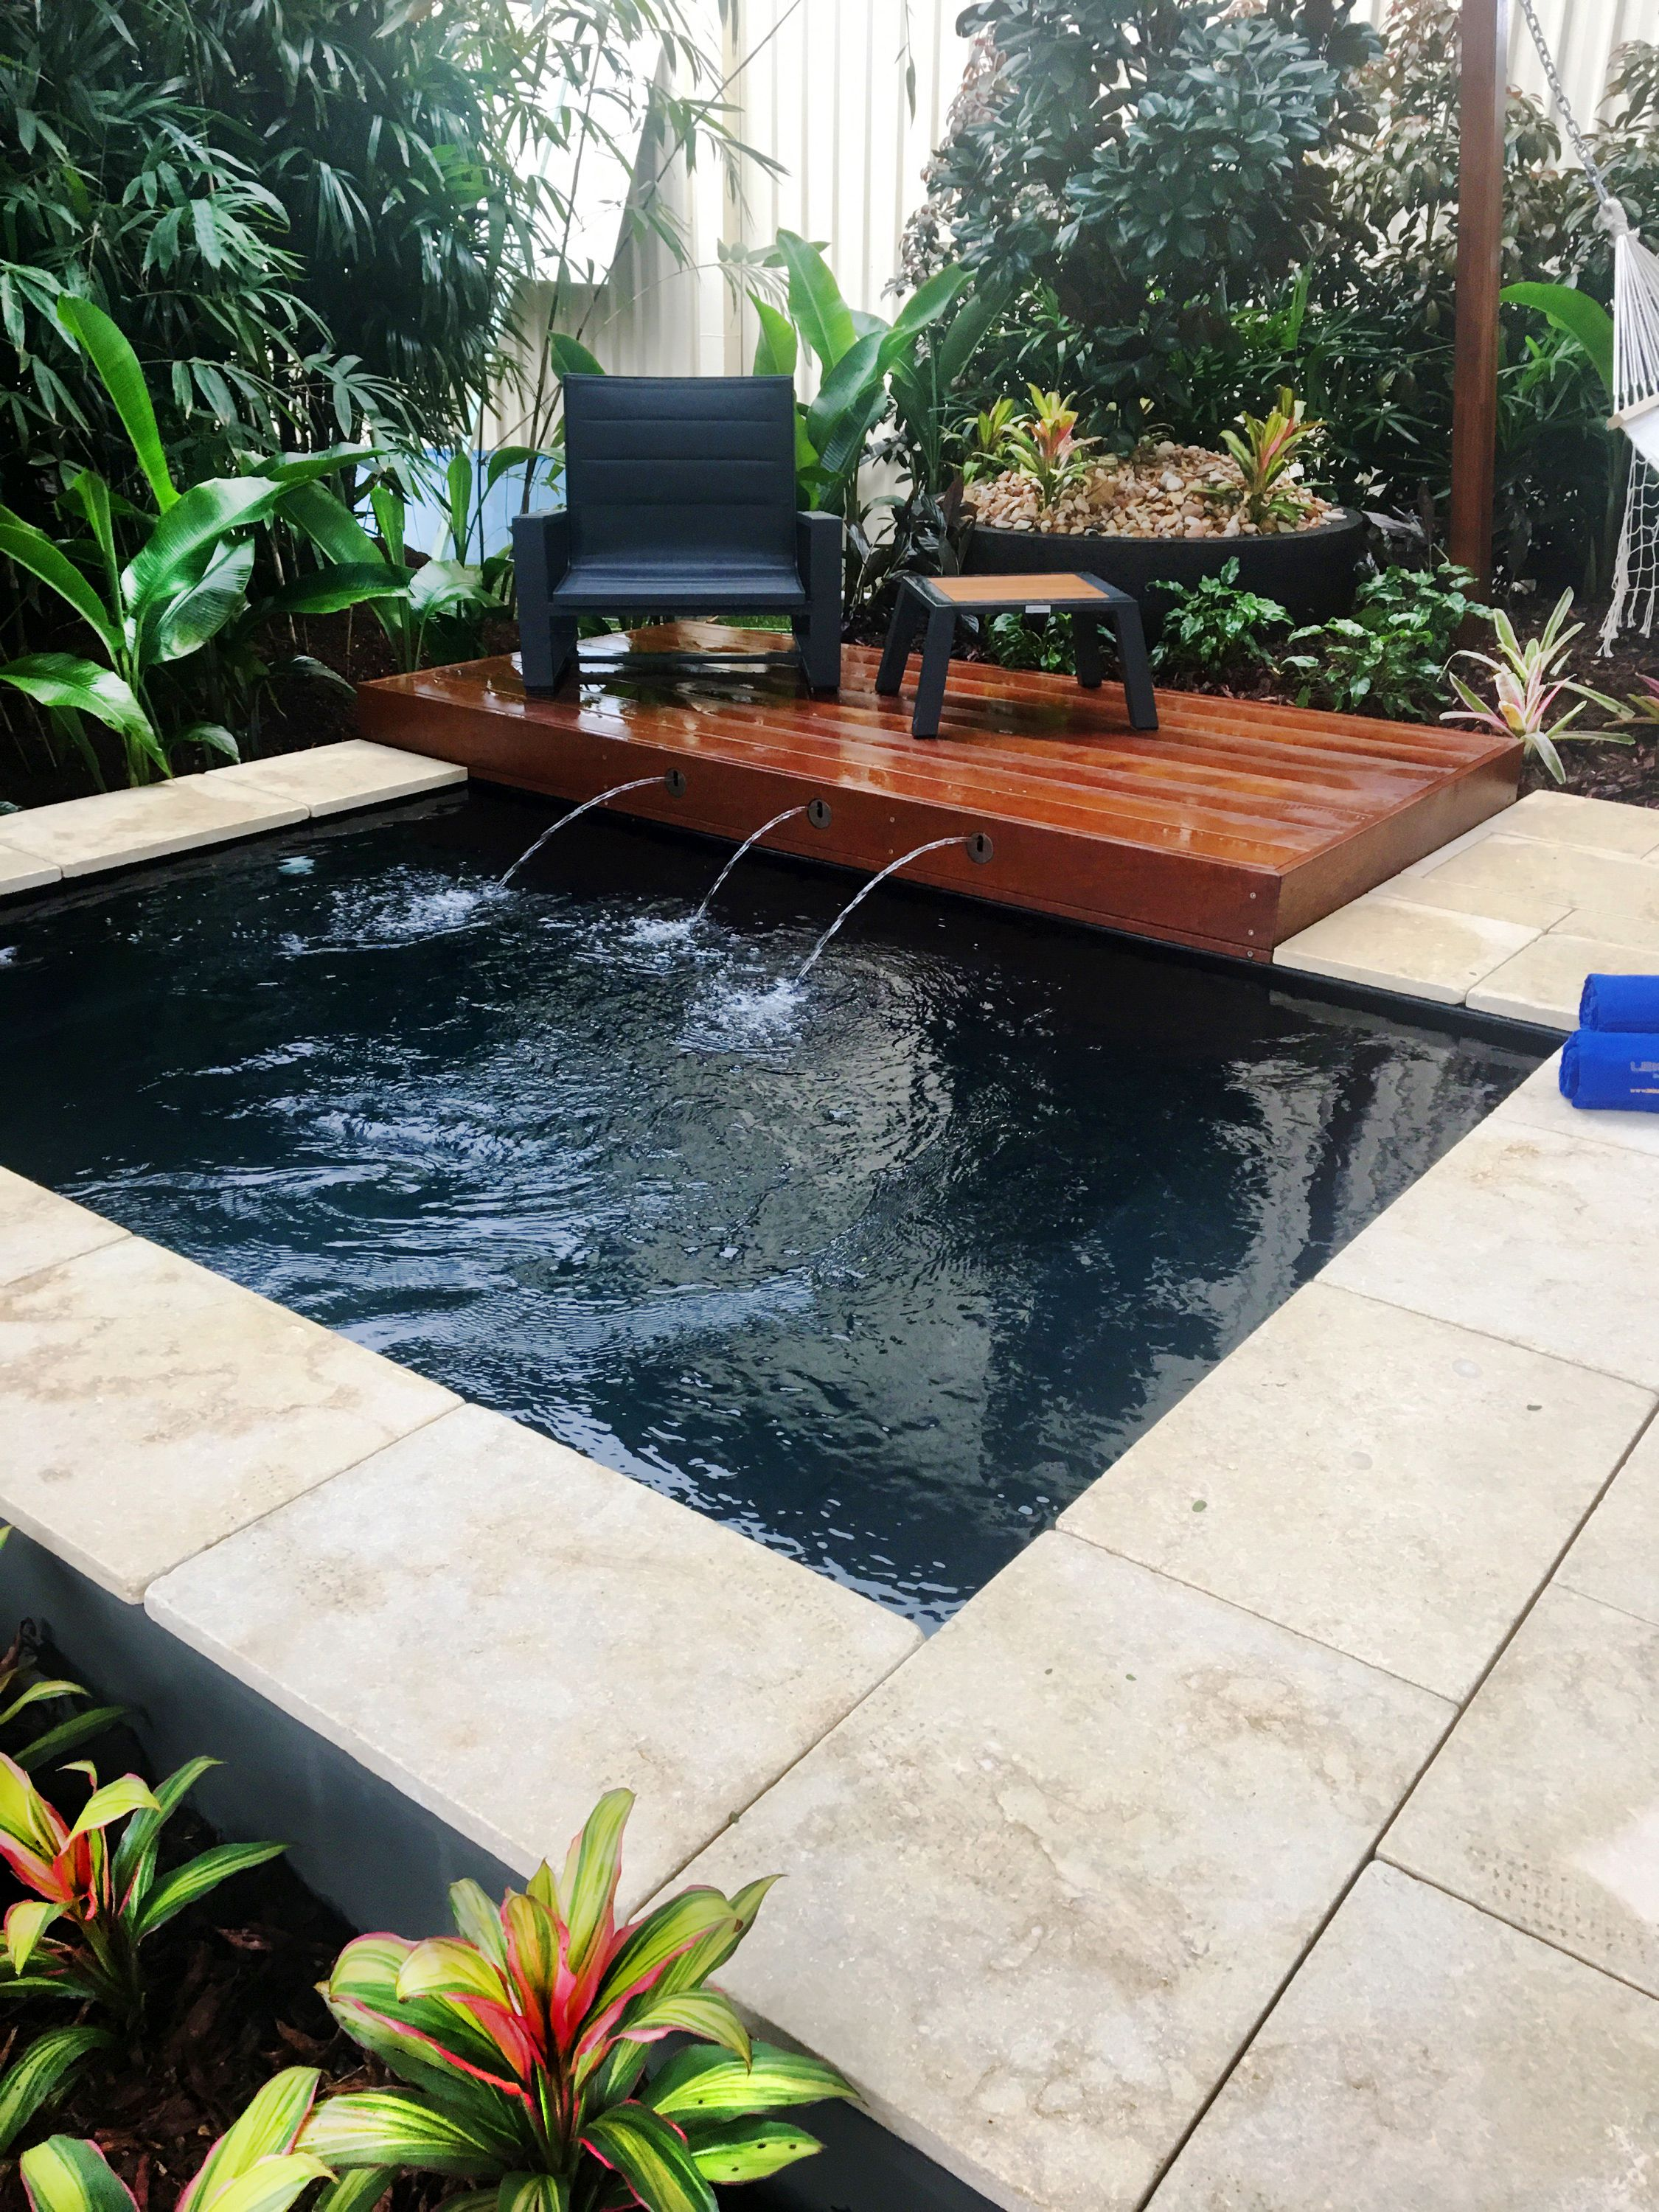 Ebony Blue Platinum Plunge 2017 Silver Award Winner For Best Garden Display The Garden Expo Sunshine Coast Lei Pool Colors Pool Landscaping Leisure Pools